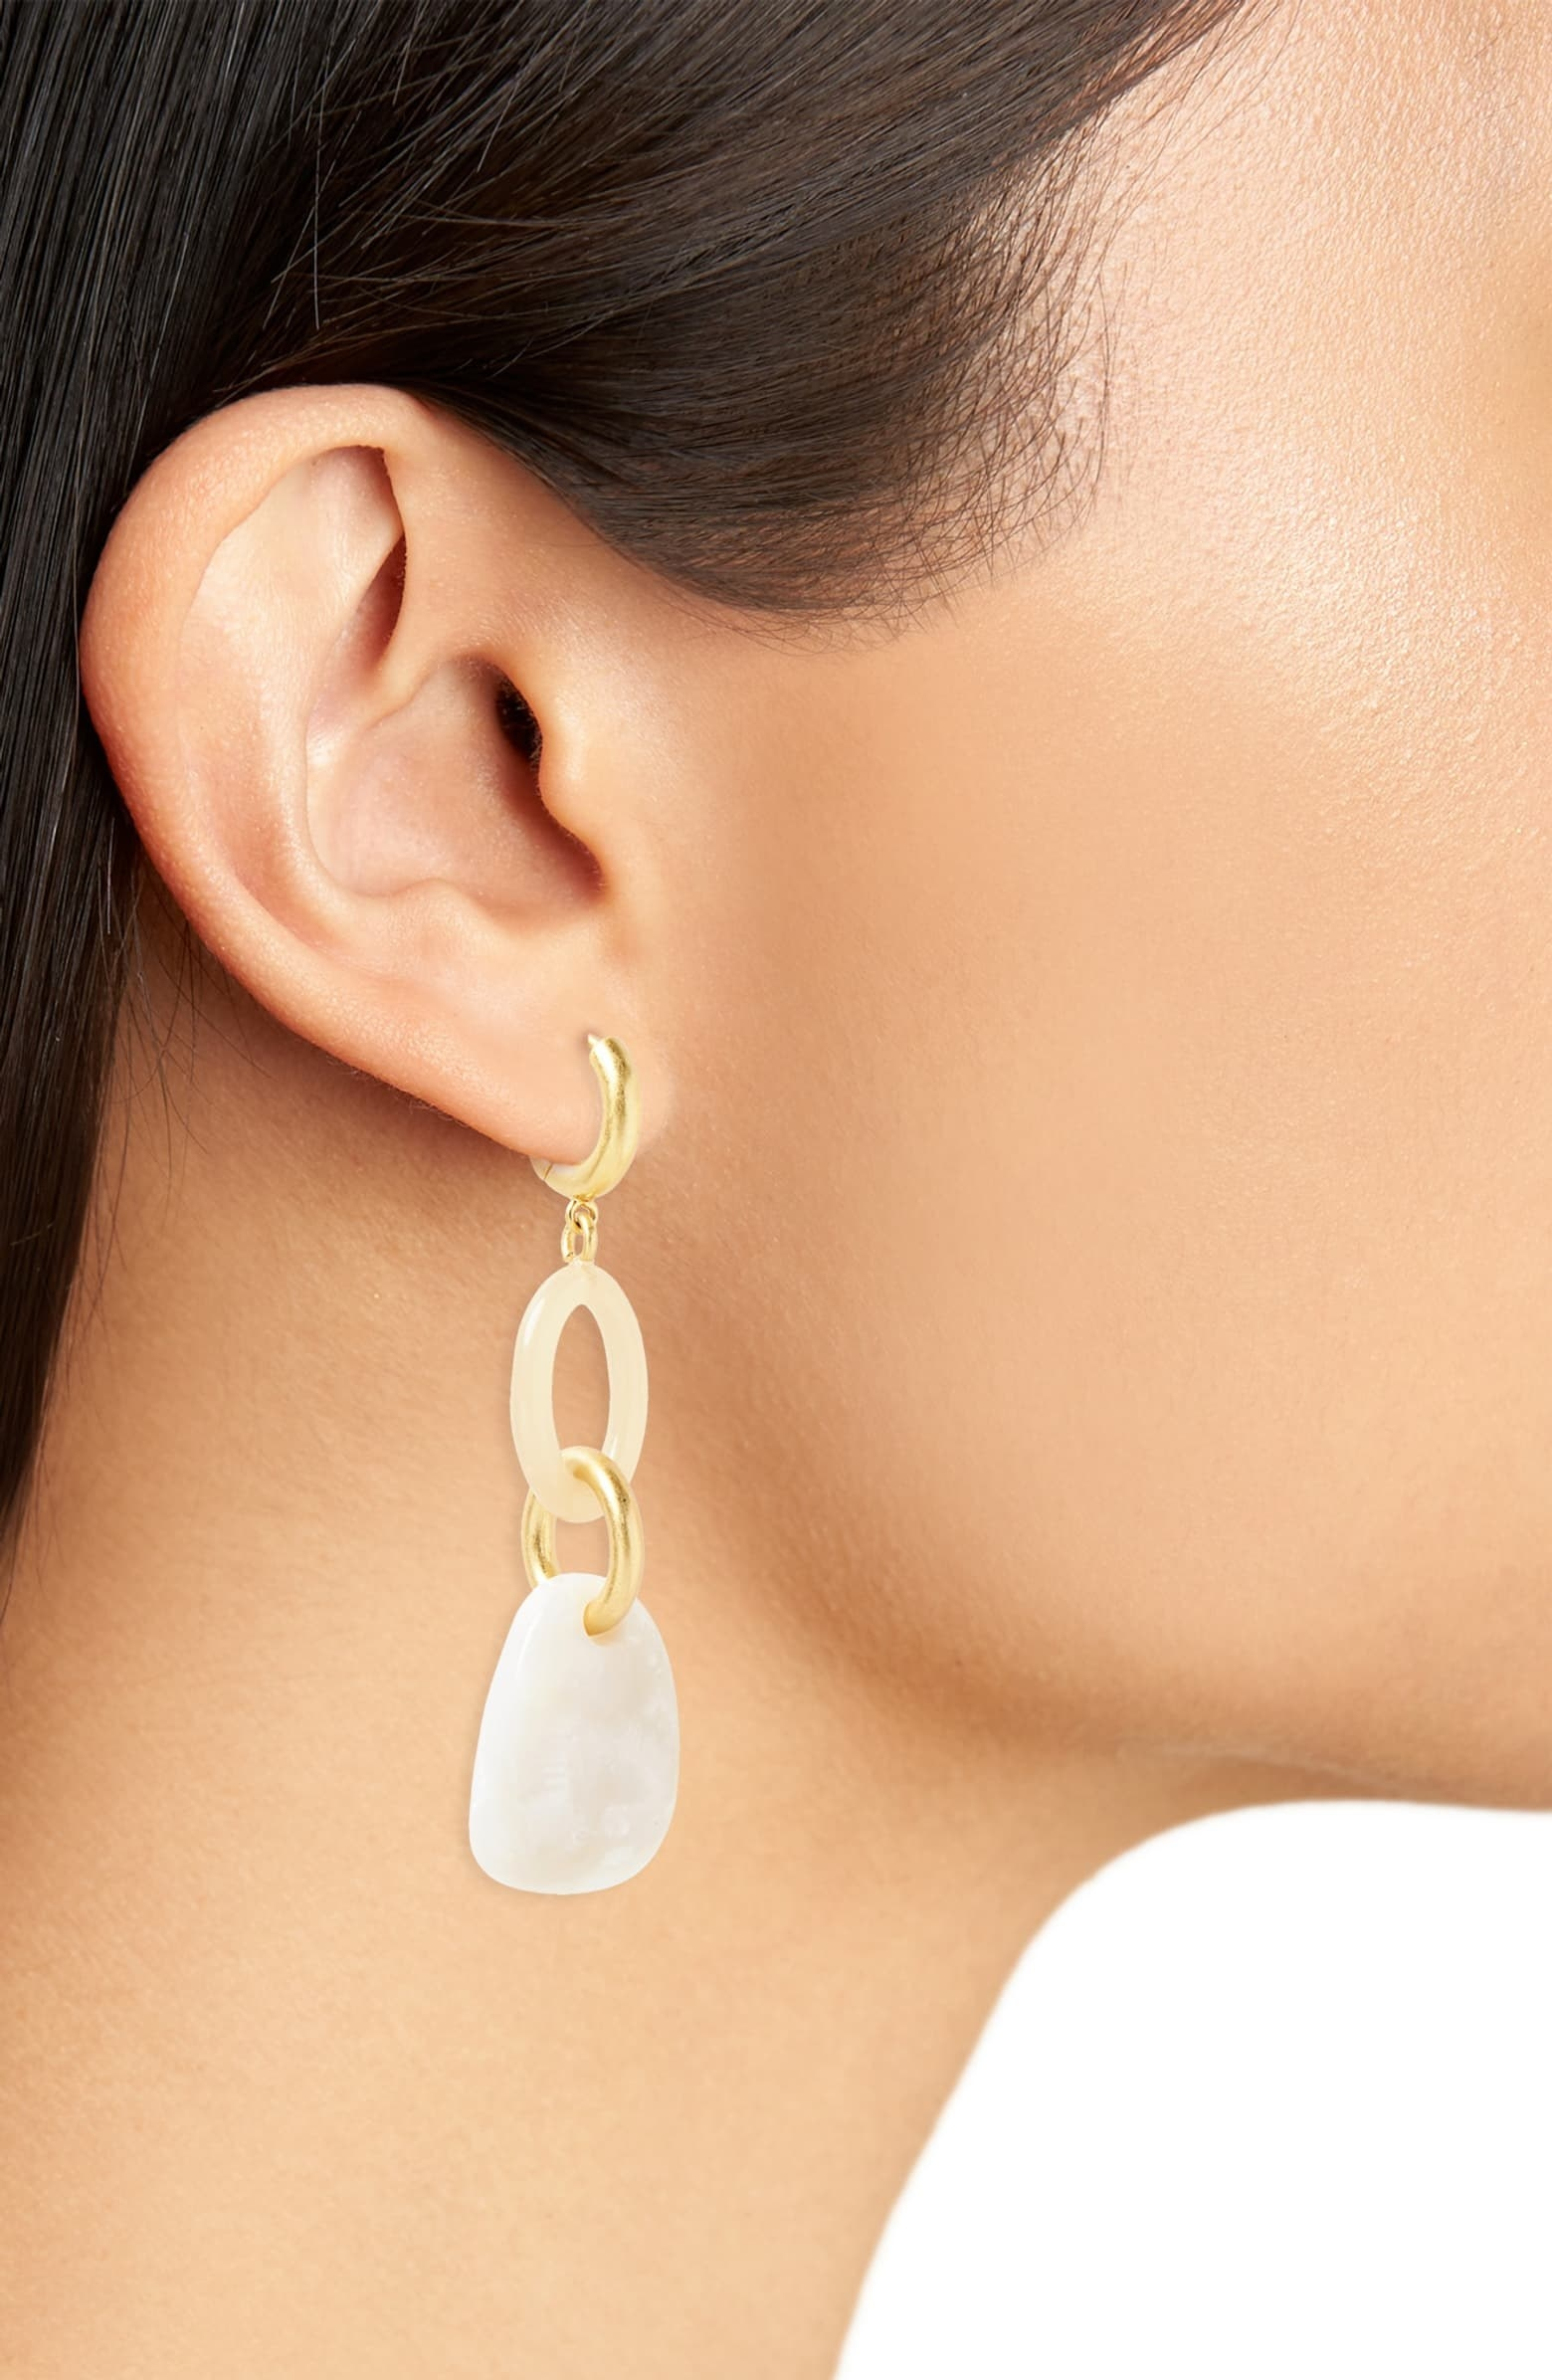 a model wearing the earrings with a gold hoop that connects to a pale pink hoop, connected to another small gold hoop, connected to a white stone